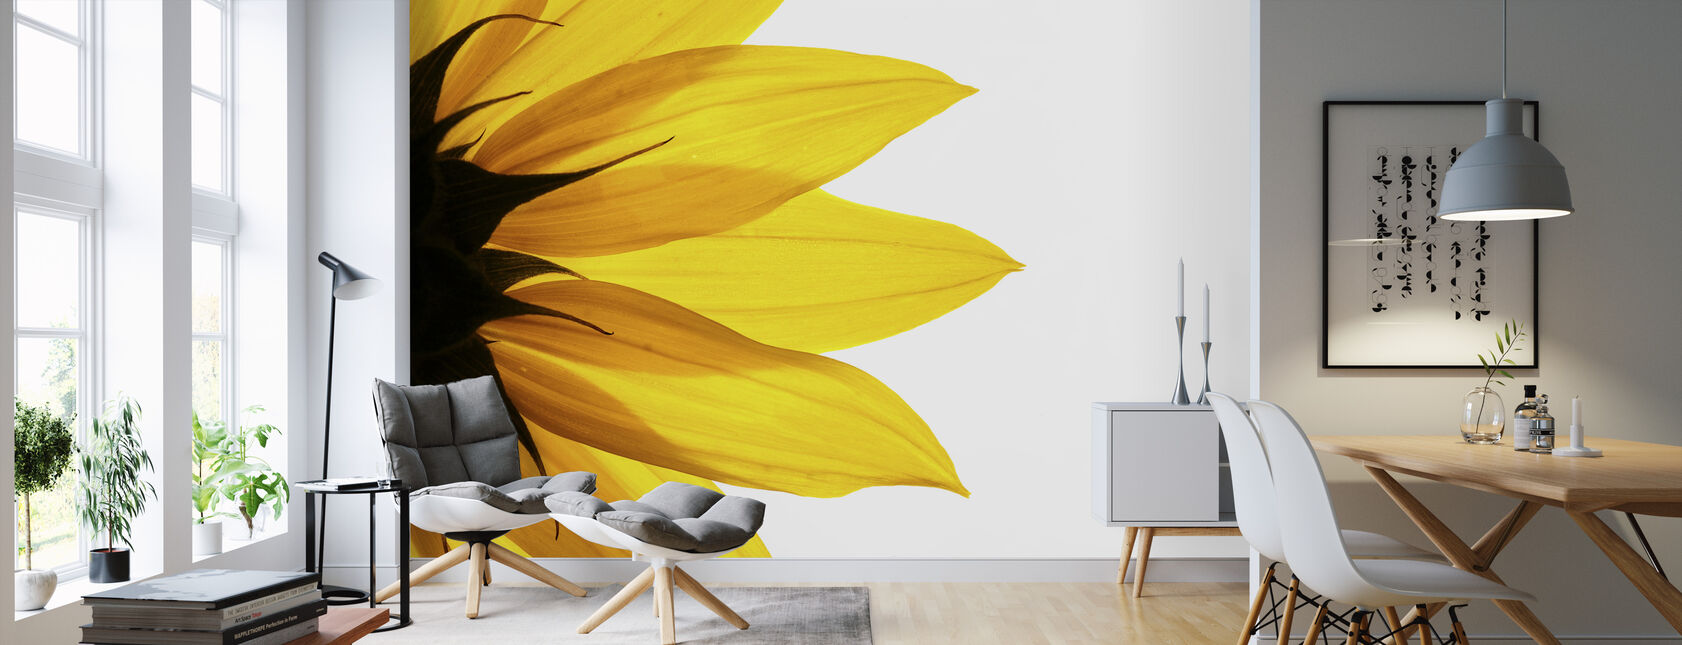 Sunflower Detail - Wallpaper - Living Room